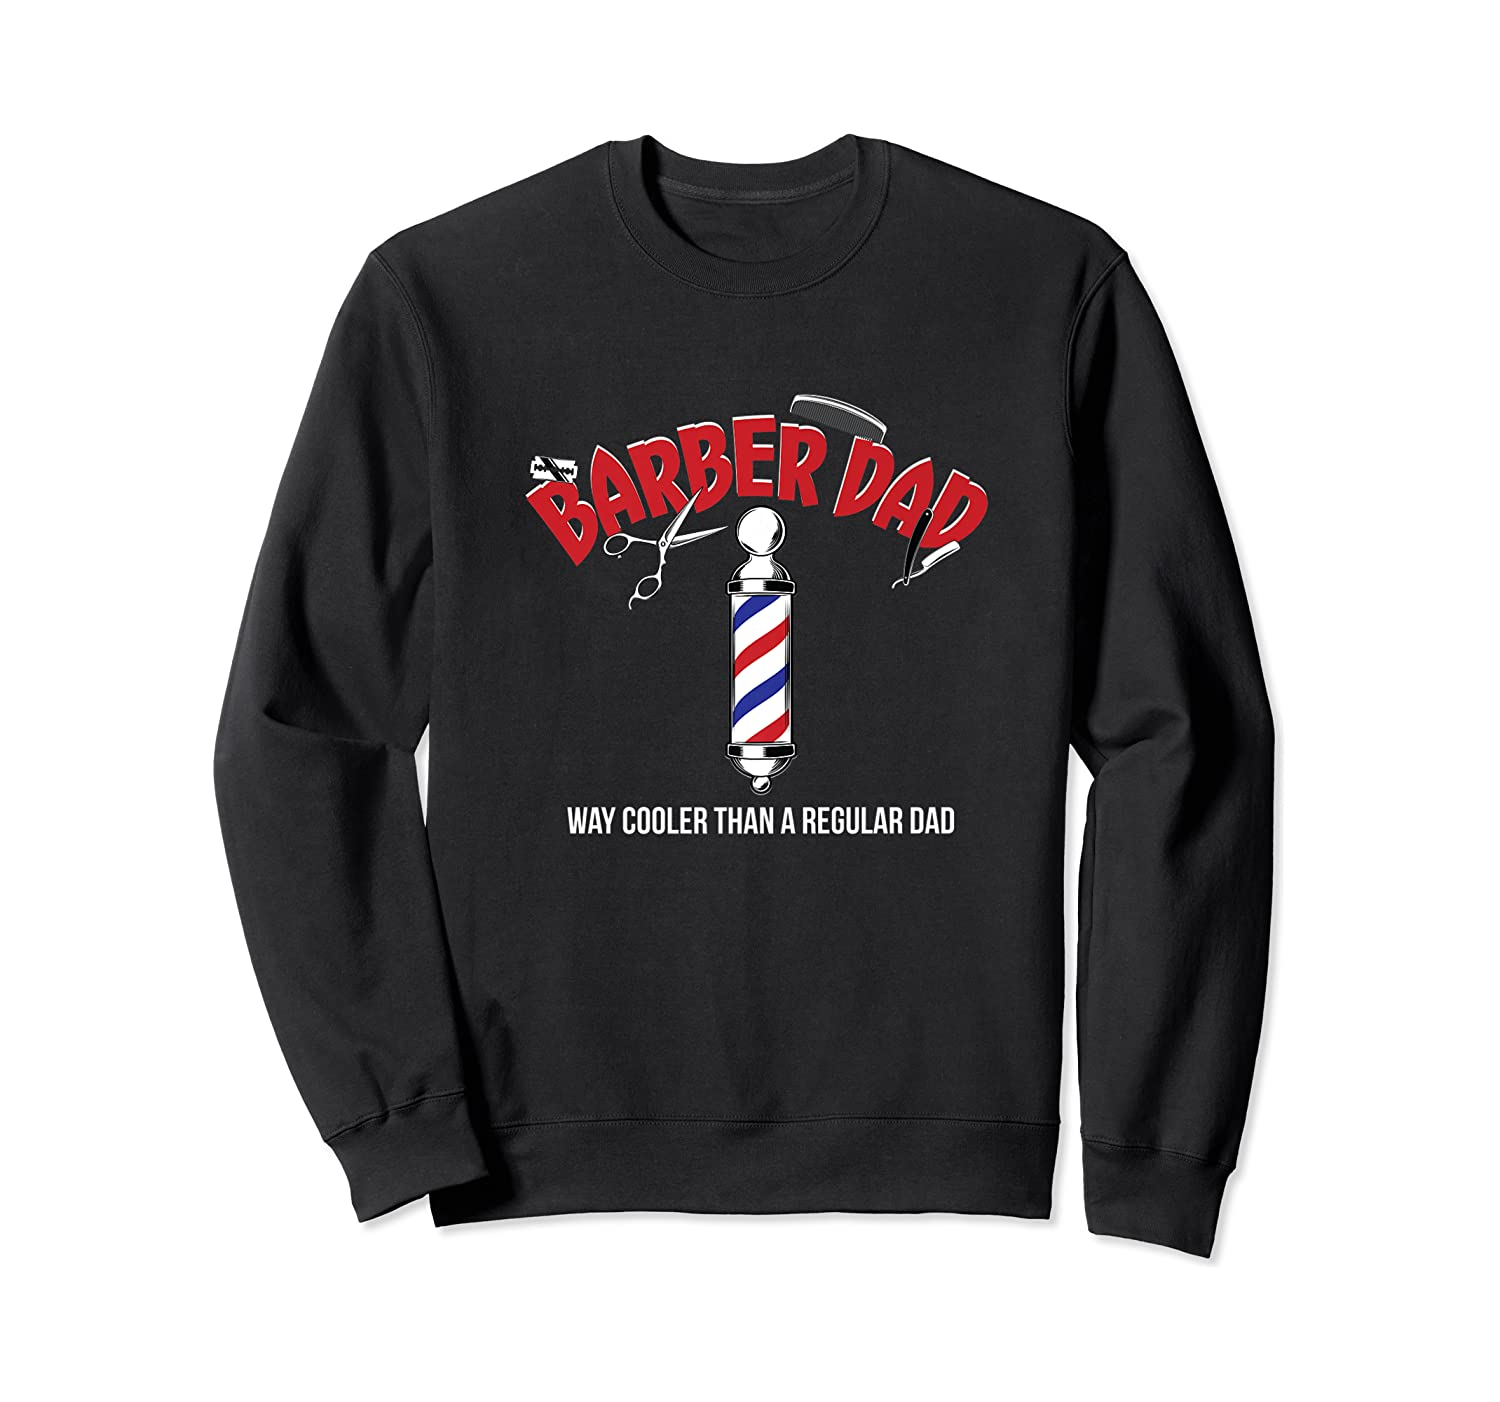 Funny Barber Dad Fathers Day T-shirt Gift From Son Daughter Crewneck Sweater